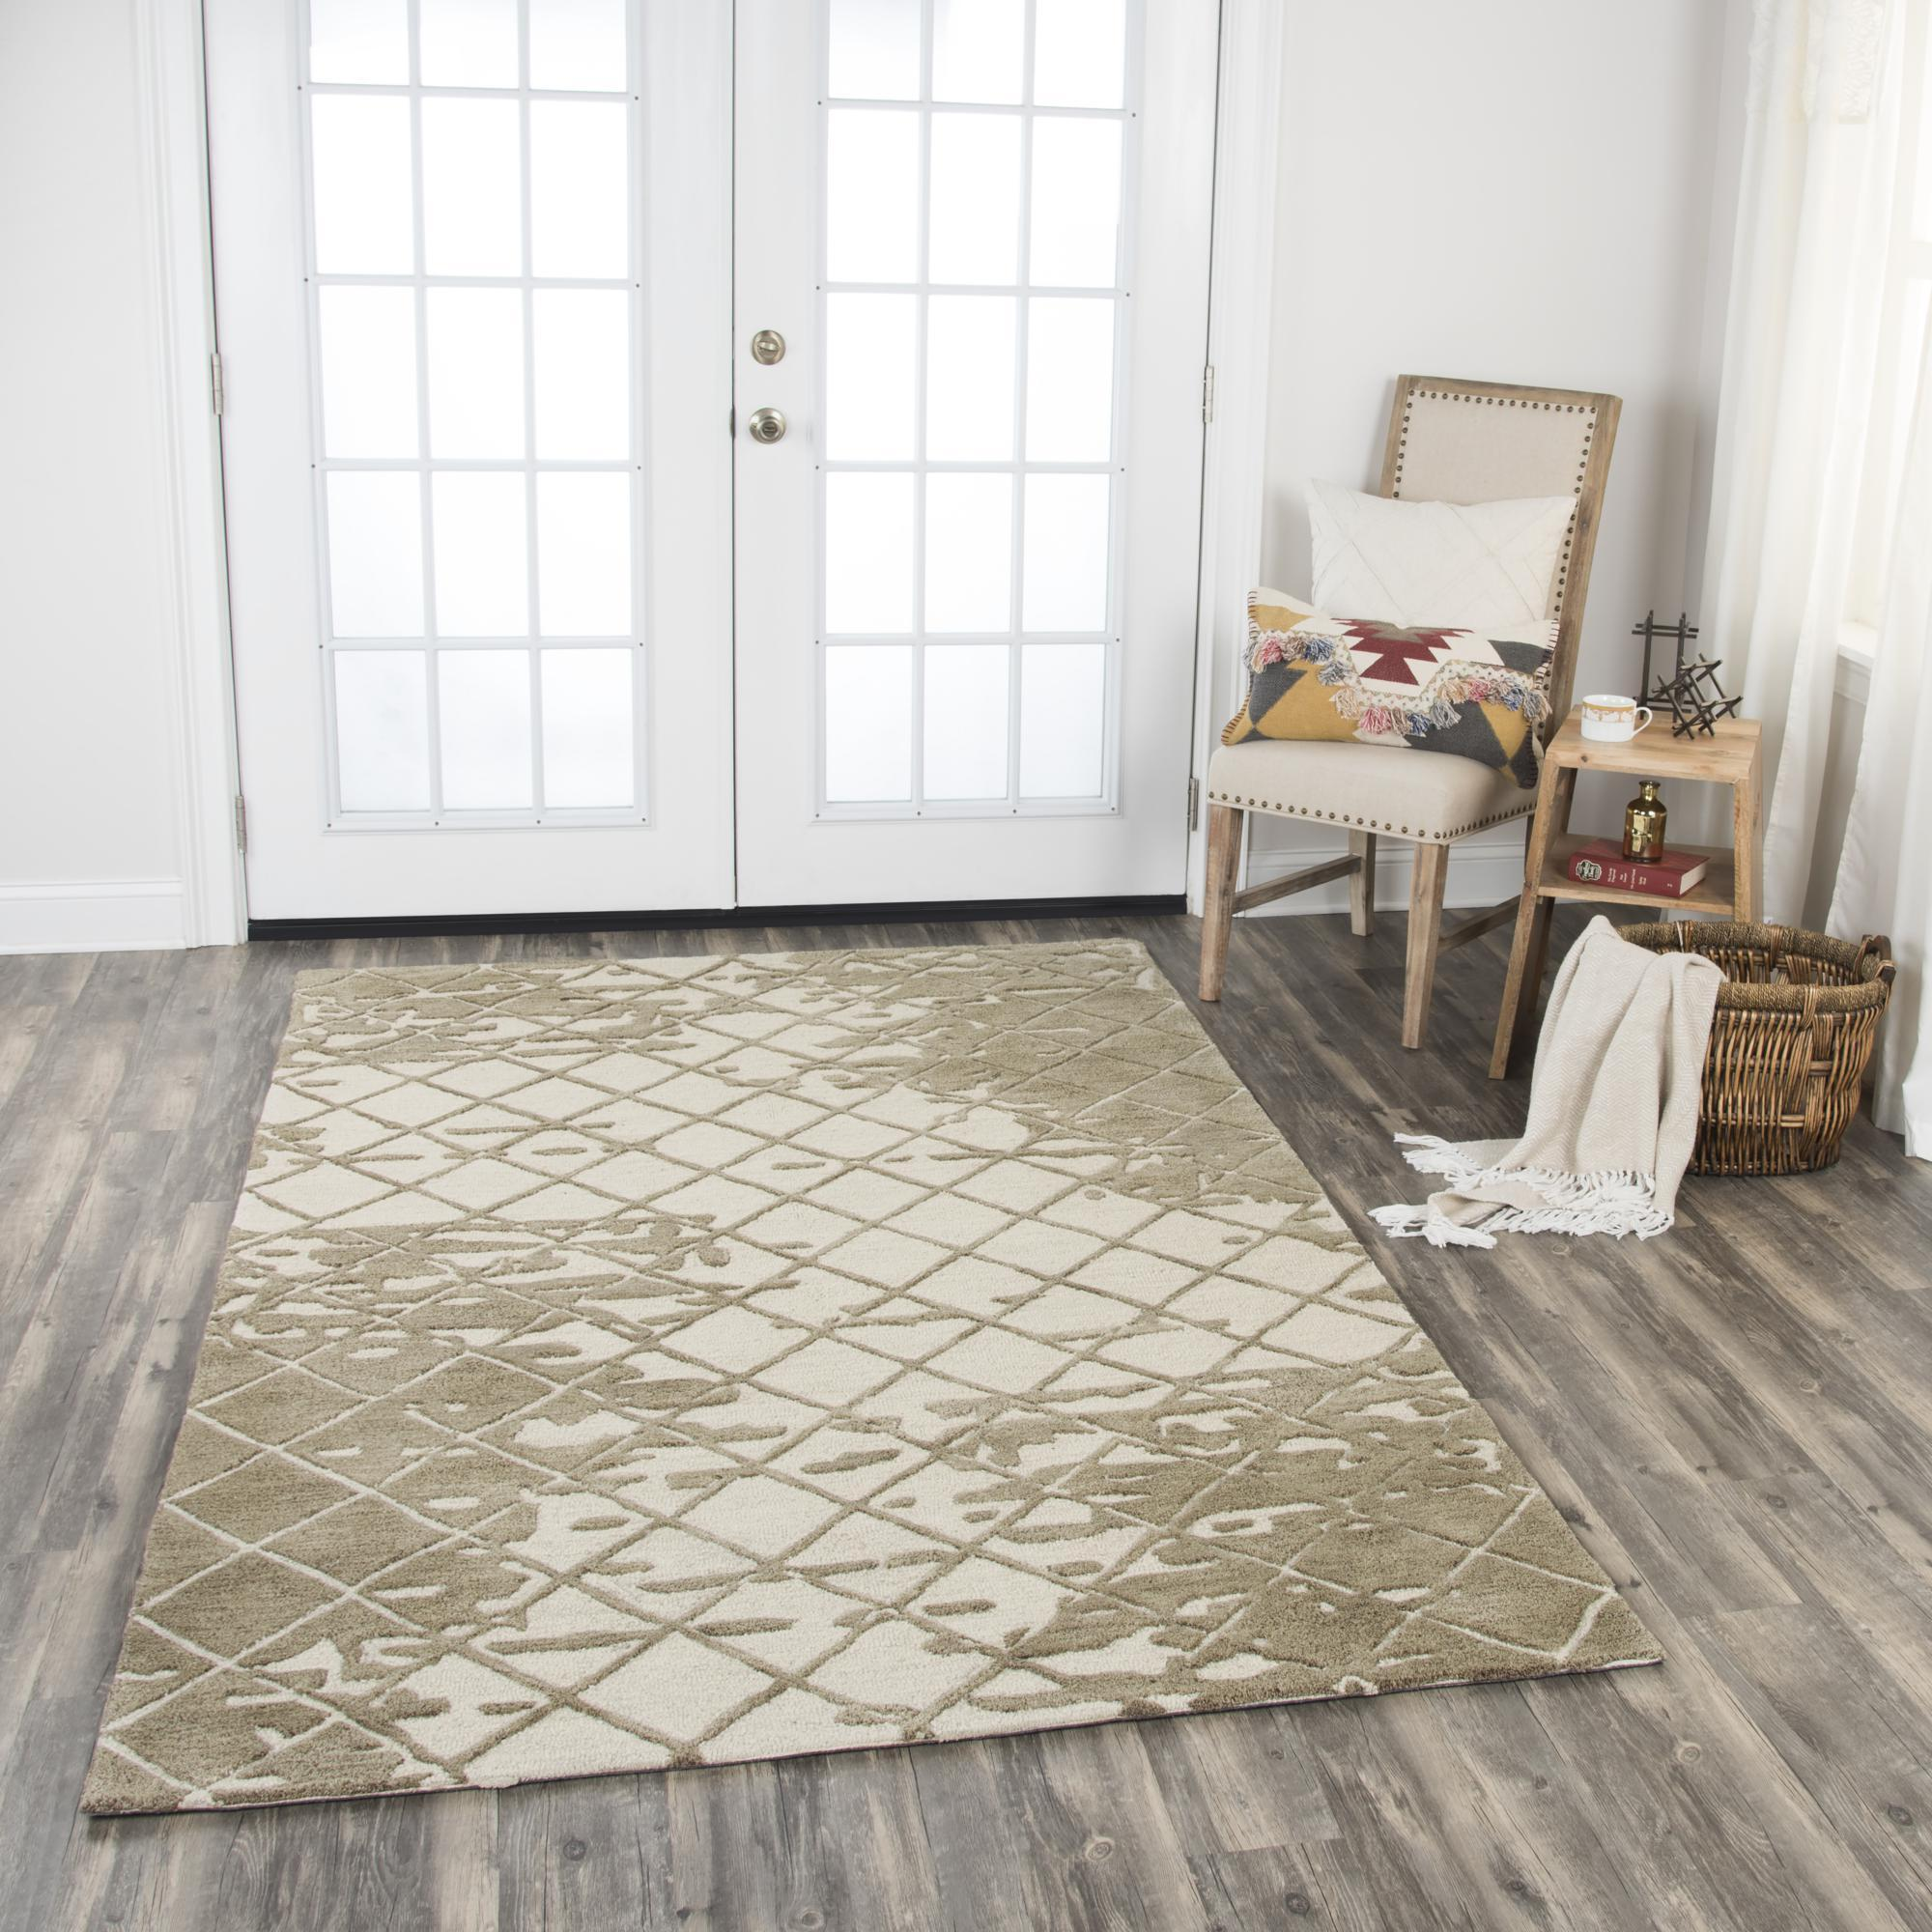 Rizzy Home Area Rugs Idyllic Area Rugs ID203B Brown 100% Wool India